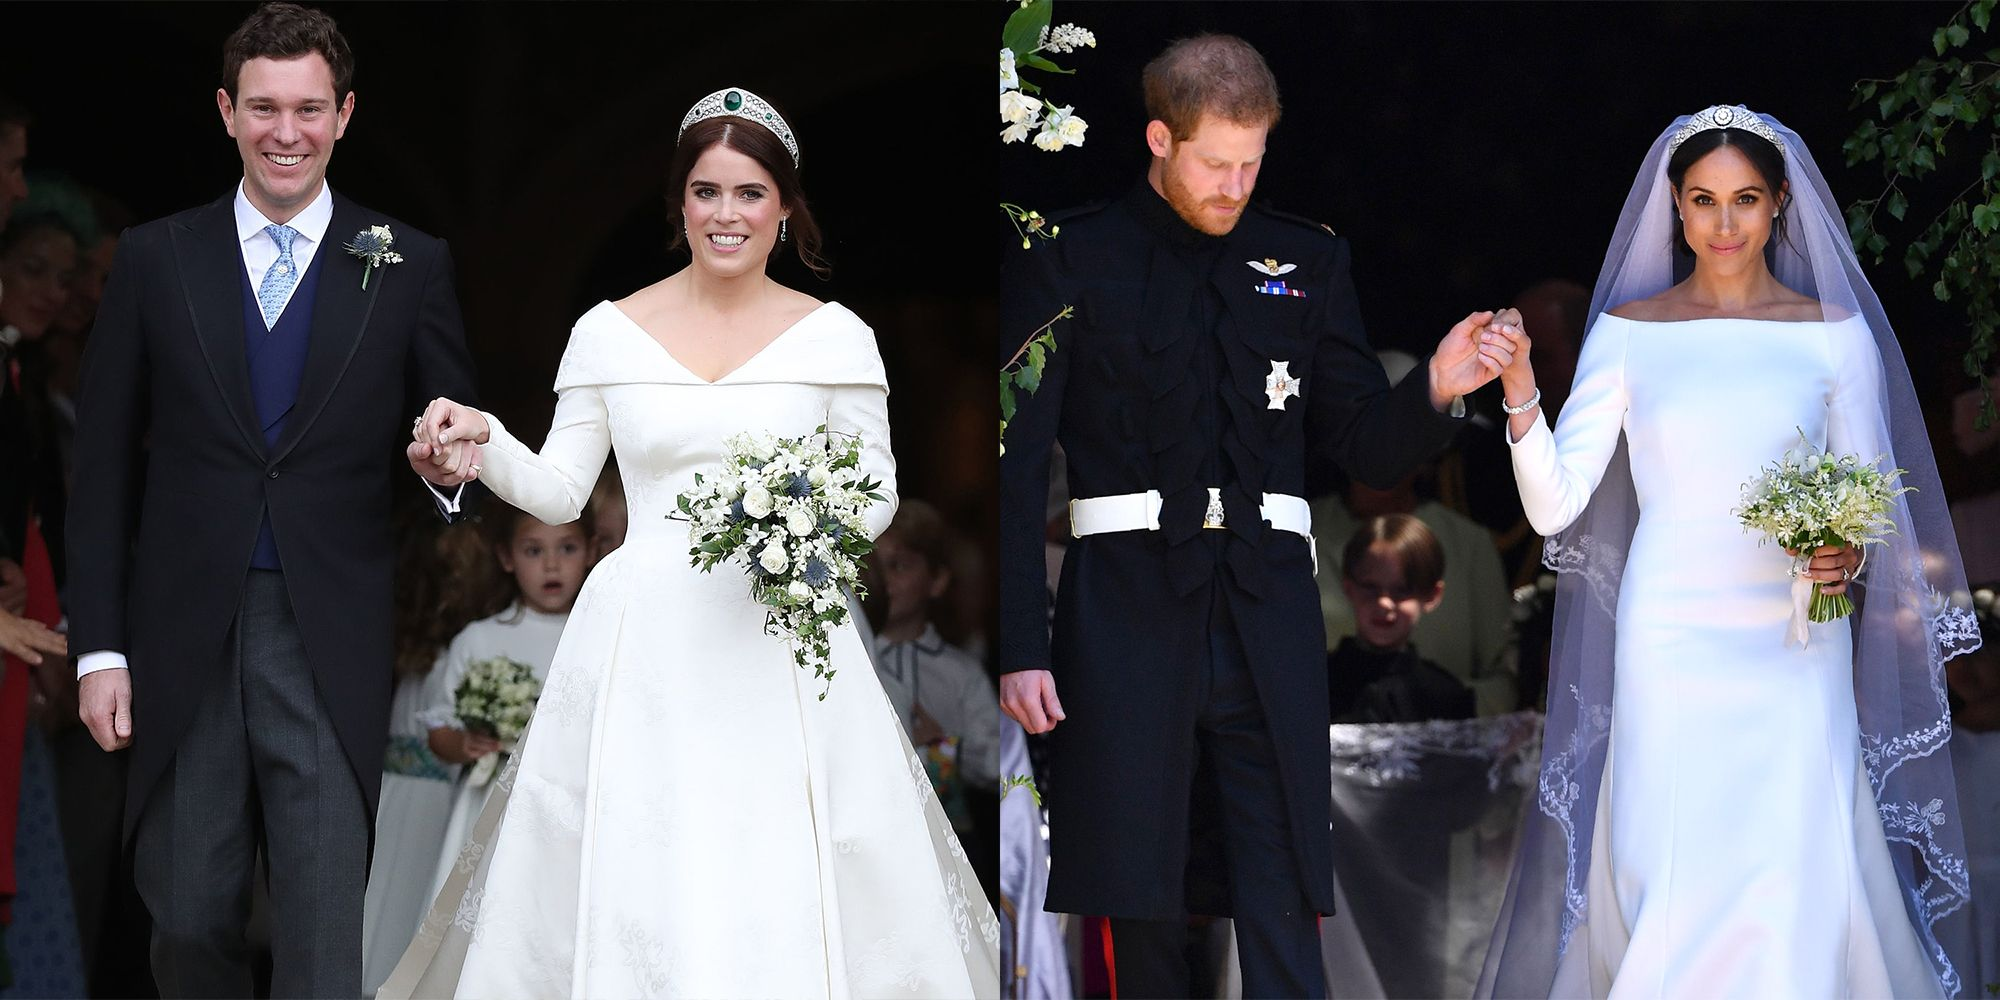 Princess Eugenies Wedding Compared to Meghan Markle and Prince Harrys